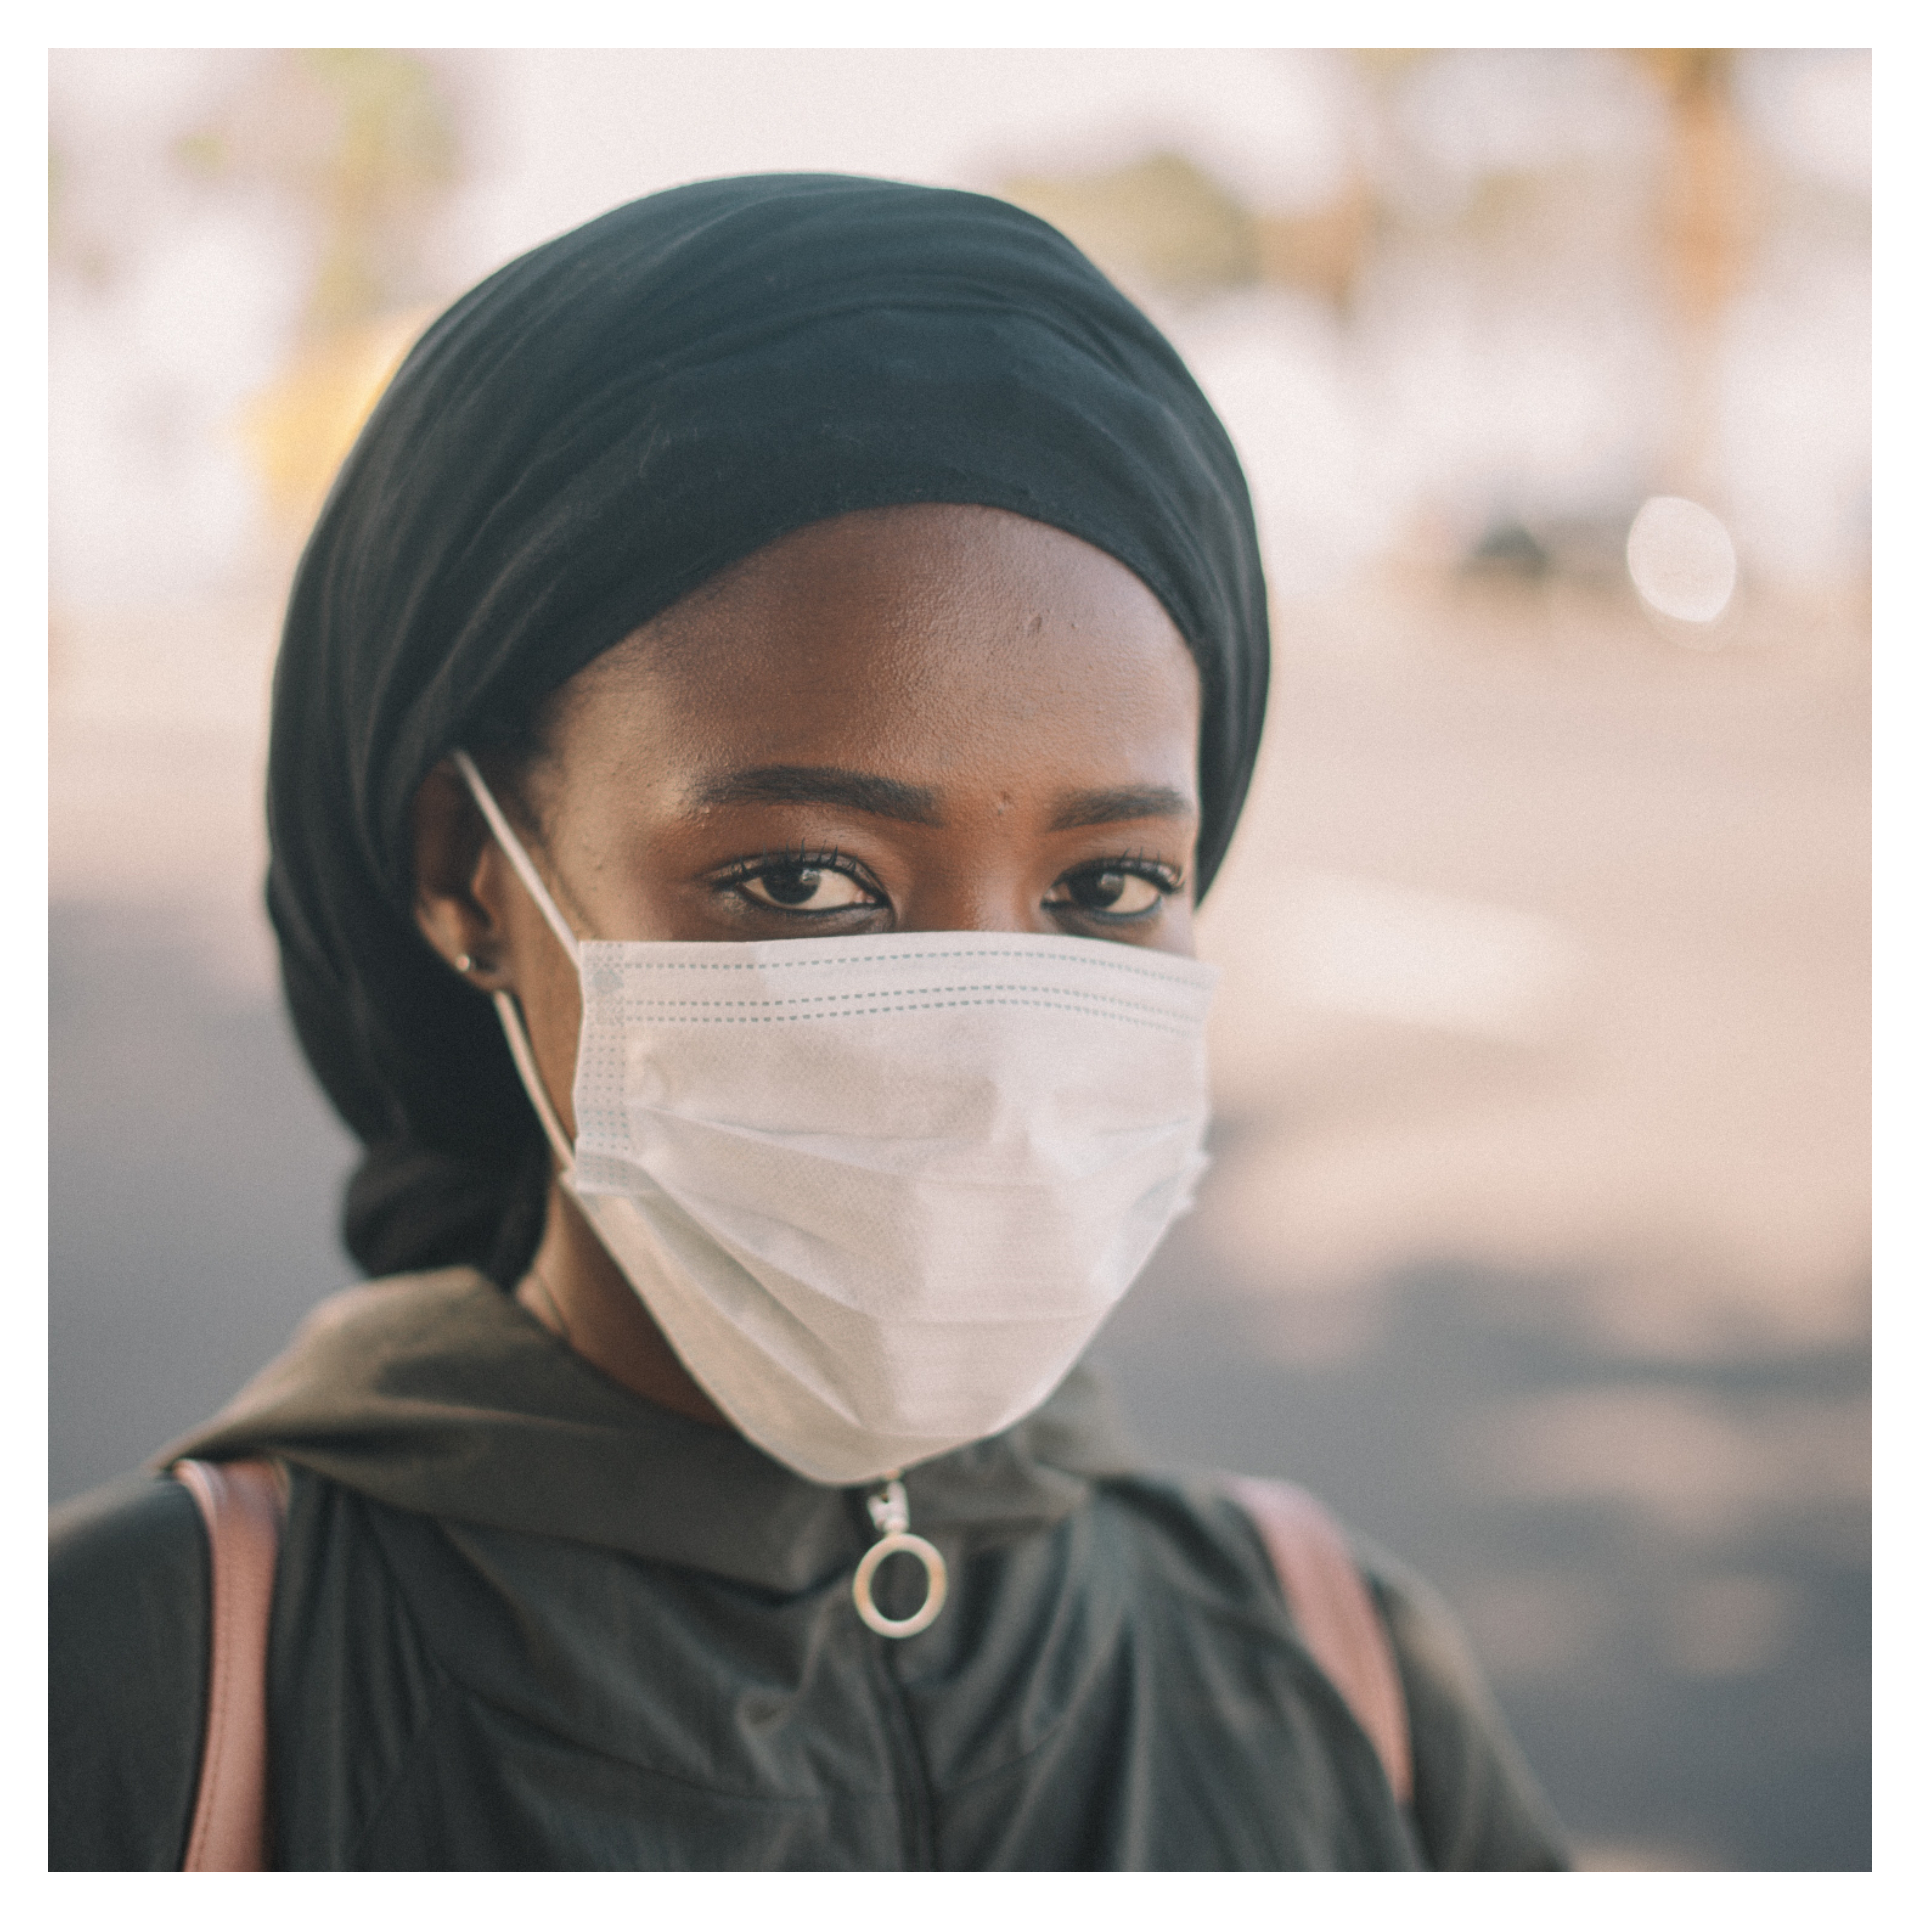 Lady with face mask on